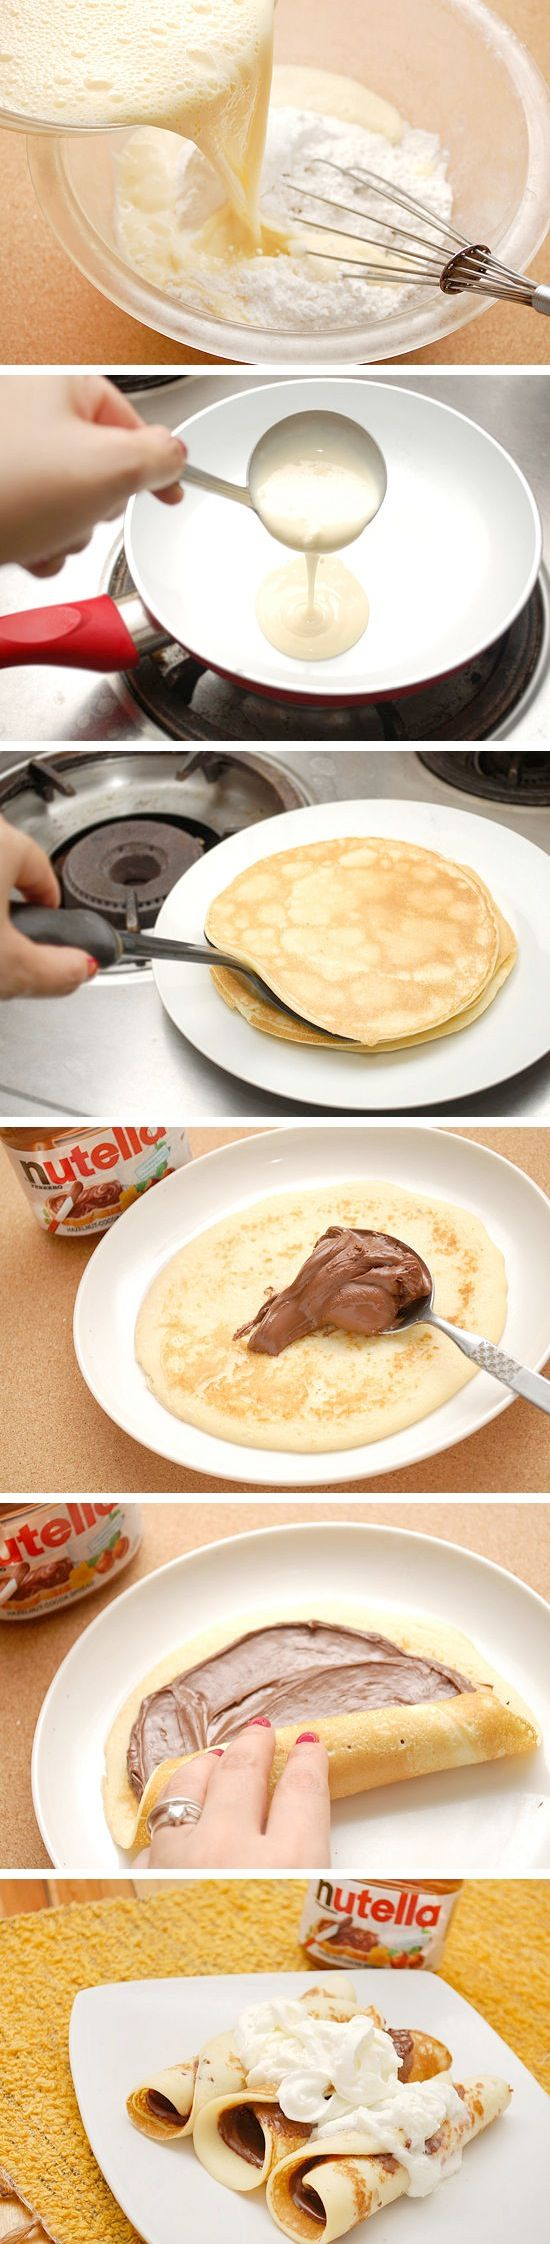 Nutella Crepes Supreme | Recipe By Photo